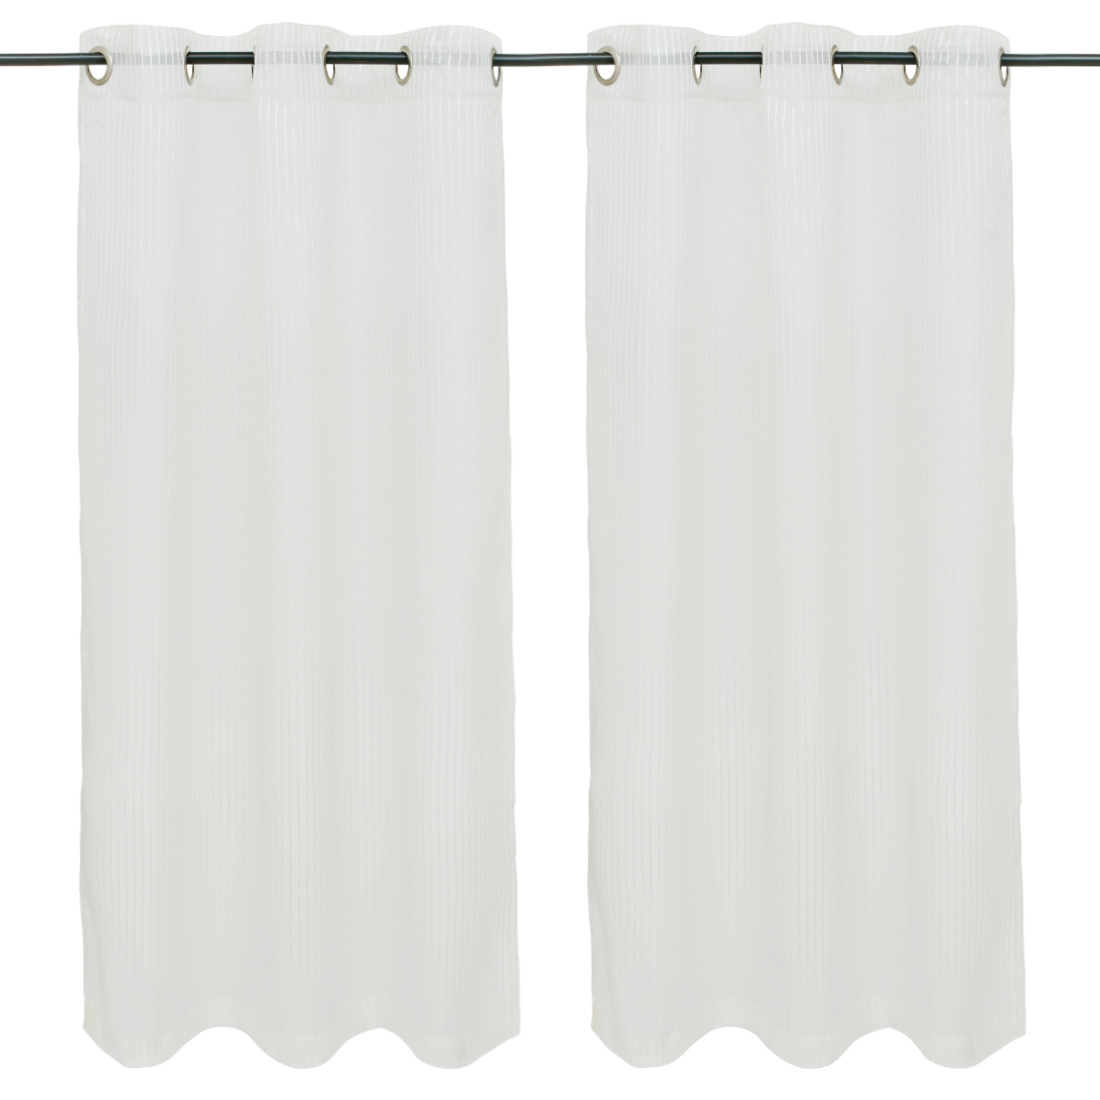 Amour set of 2 Polyester Window Curtains in White Colour by Living Essence